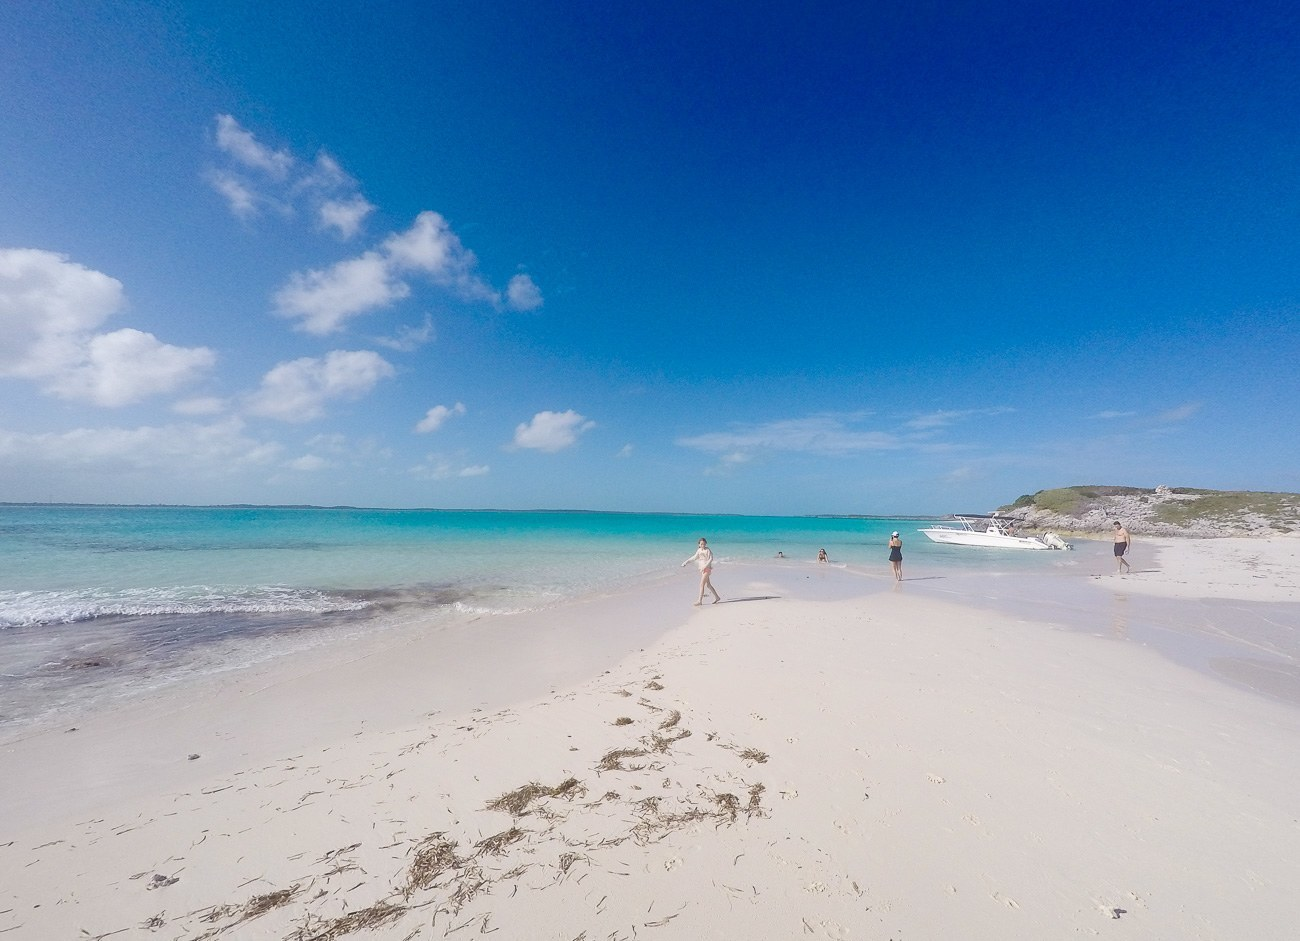 What It's Like to Swim with Pigs in the Bahamas - La Jolla Mom